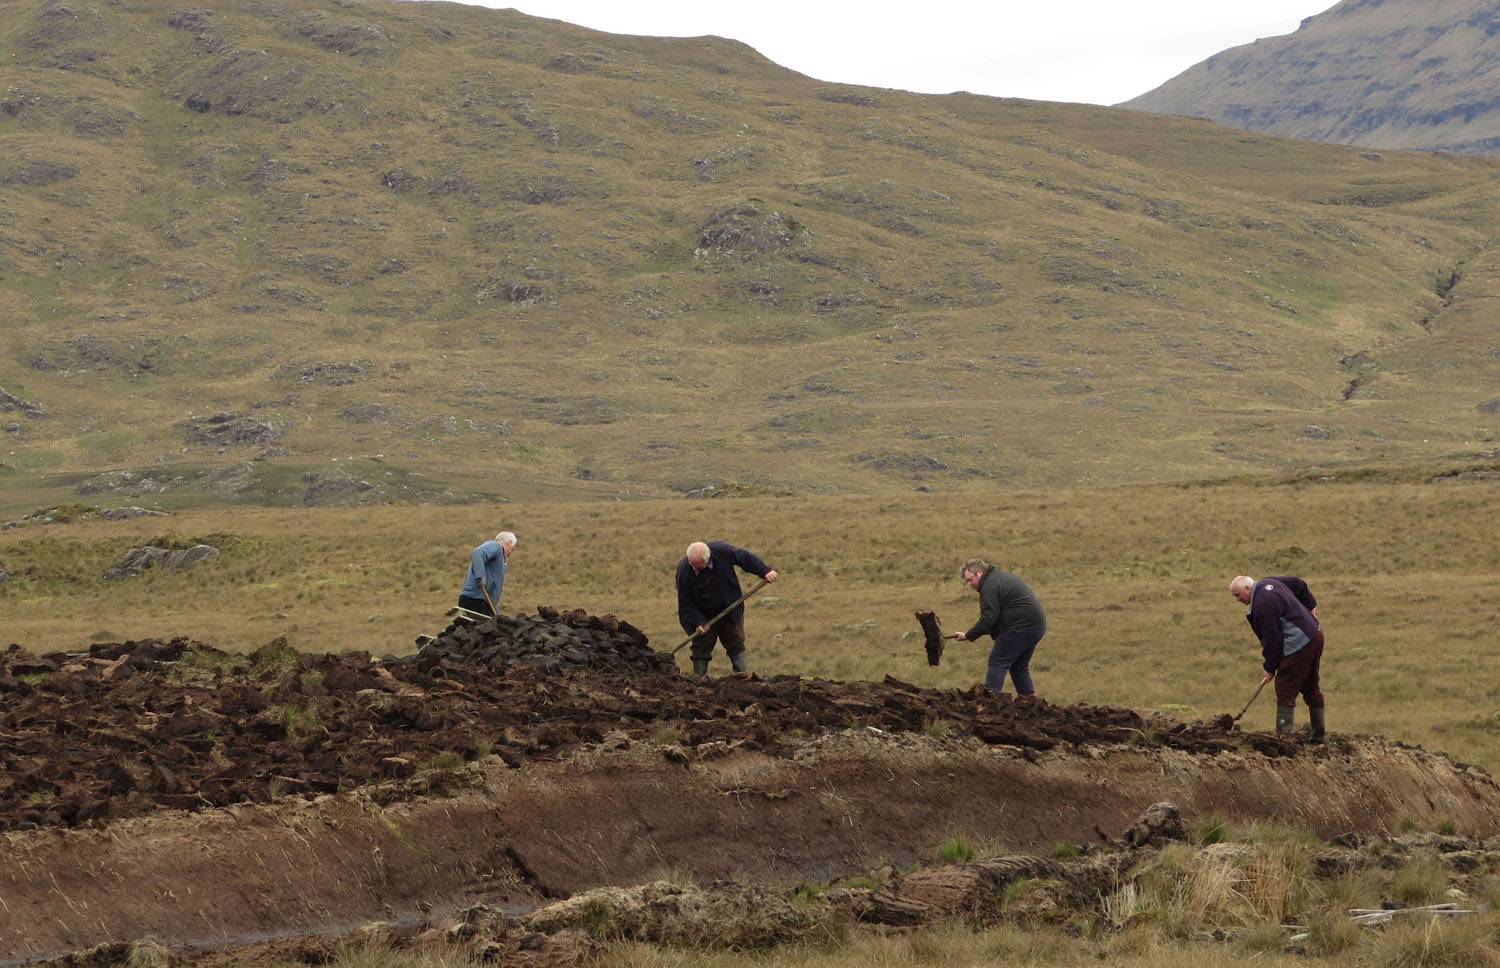 Ireland-Sights-And-Scenery-Peat-Gentlemen-Digging